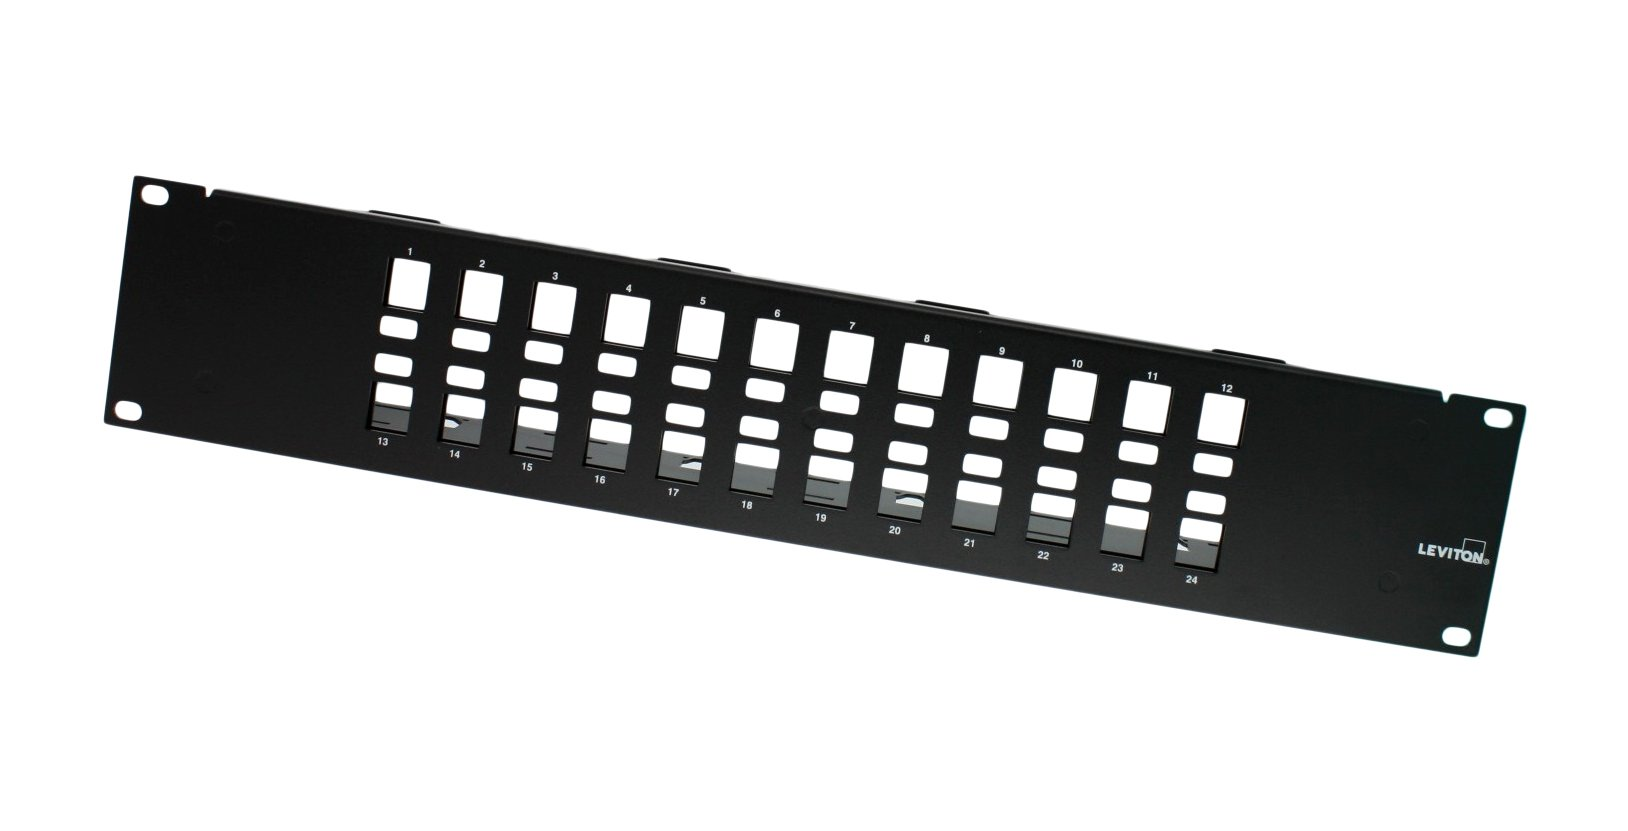 Leviton 49255-Q24 QuickPort Multimedia Patch Panel, 24-Port, 1RU, Cable Management Bar Included